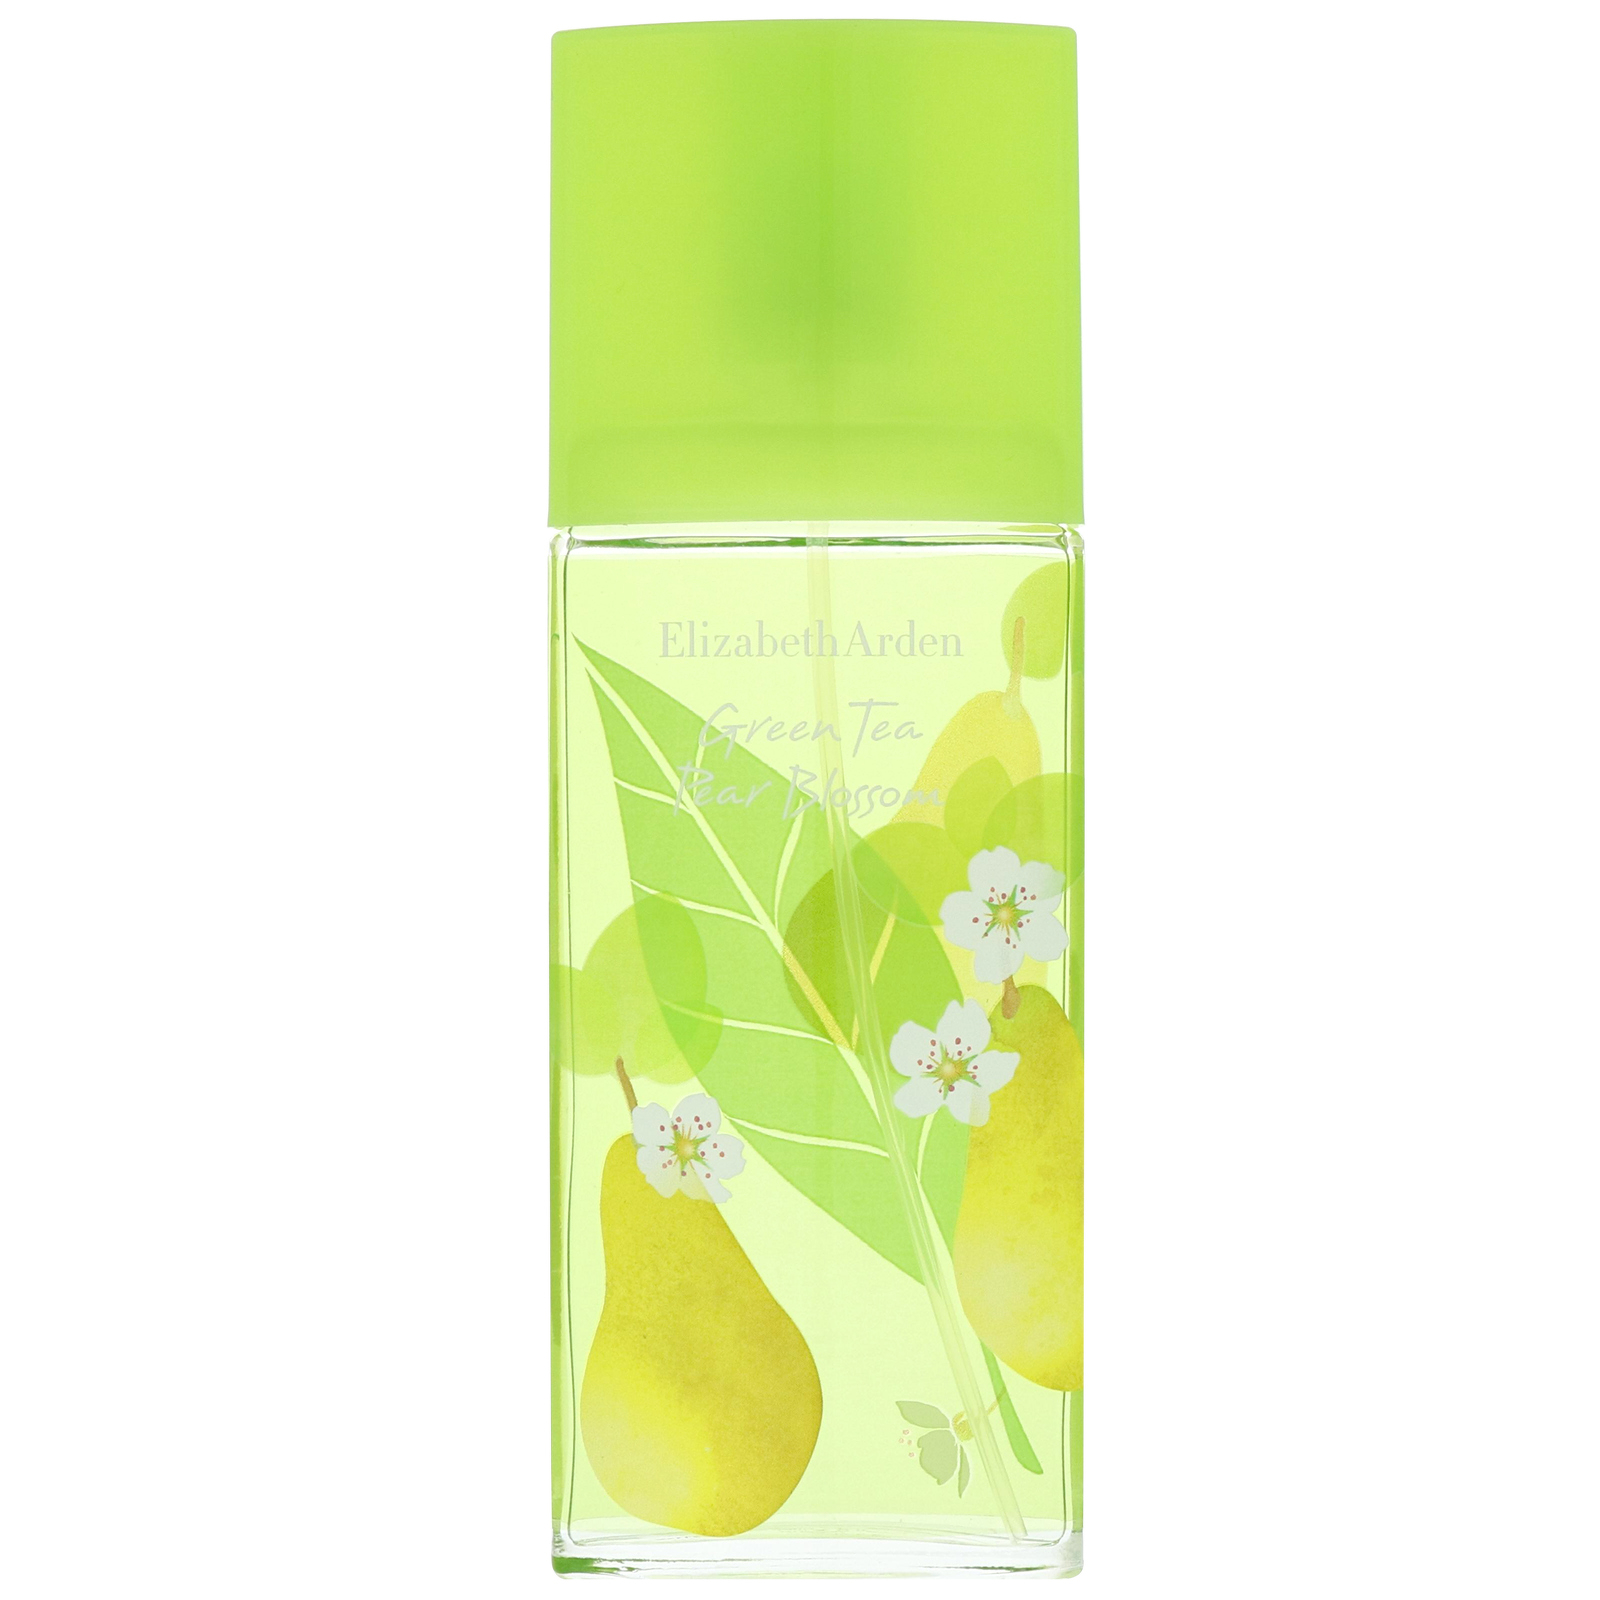 Elizabeth Arden Green Tea Pear Blossom Eau de Toilette Spray 100ml / 3.3 fl.oz.